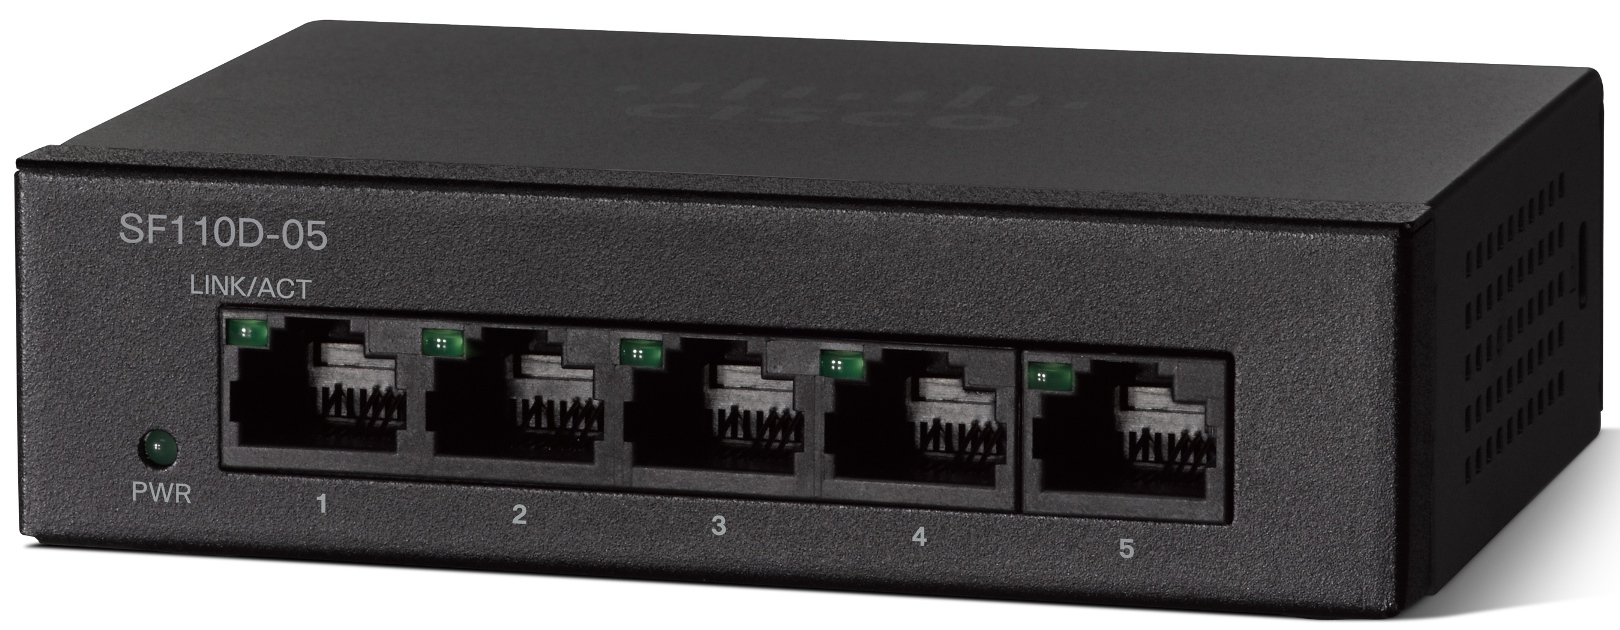 Cisco SF110D-05-EU, 5x10/100 Desktop Switch